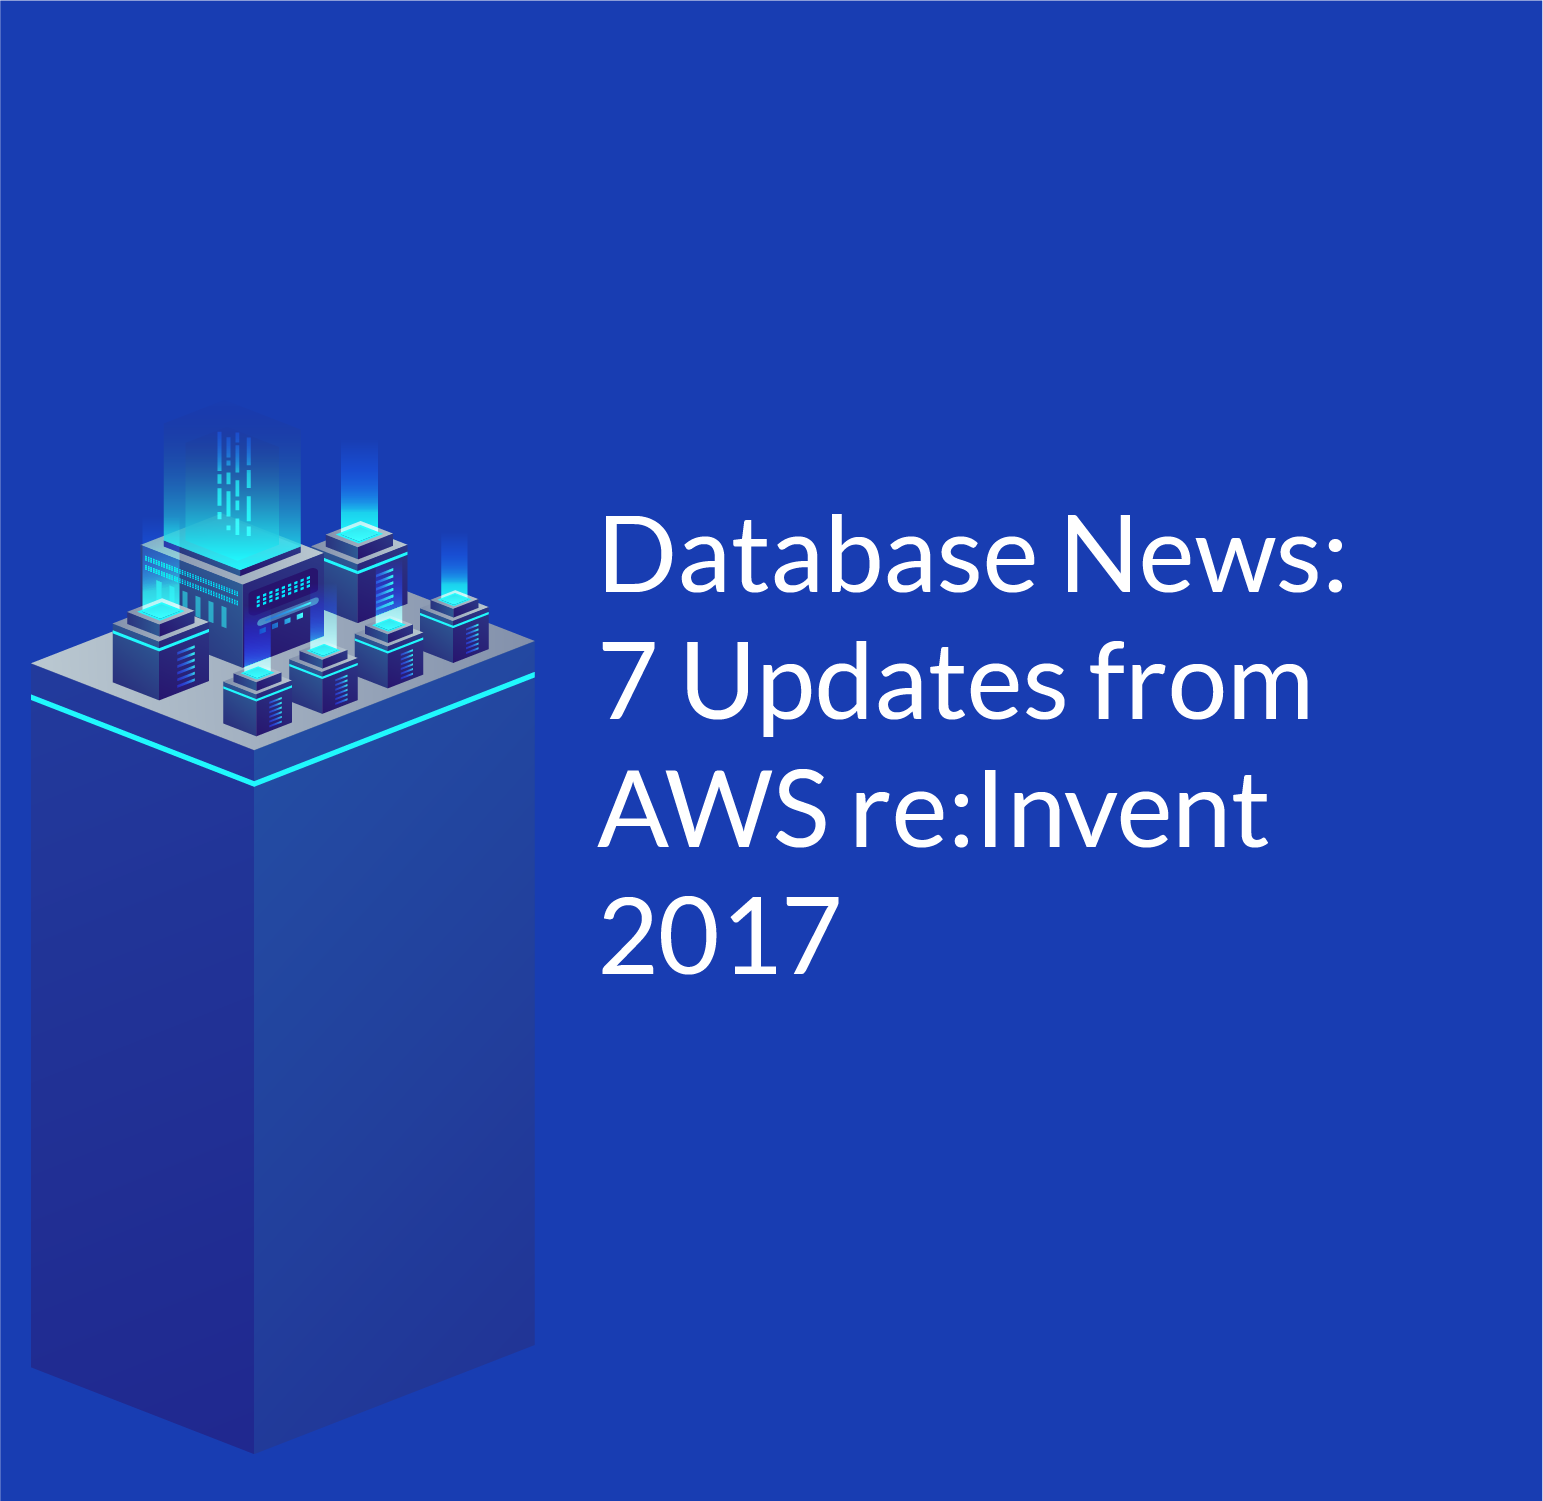 Database News: 7 Updates from AWS re:Invent 2017